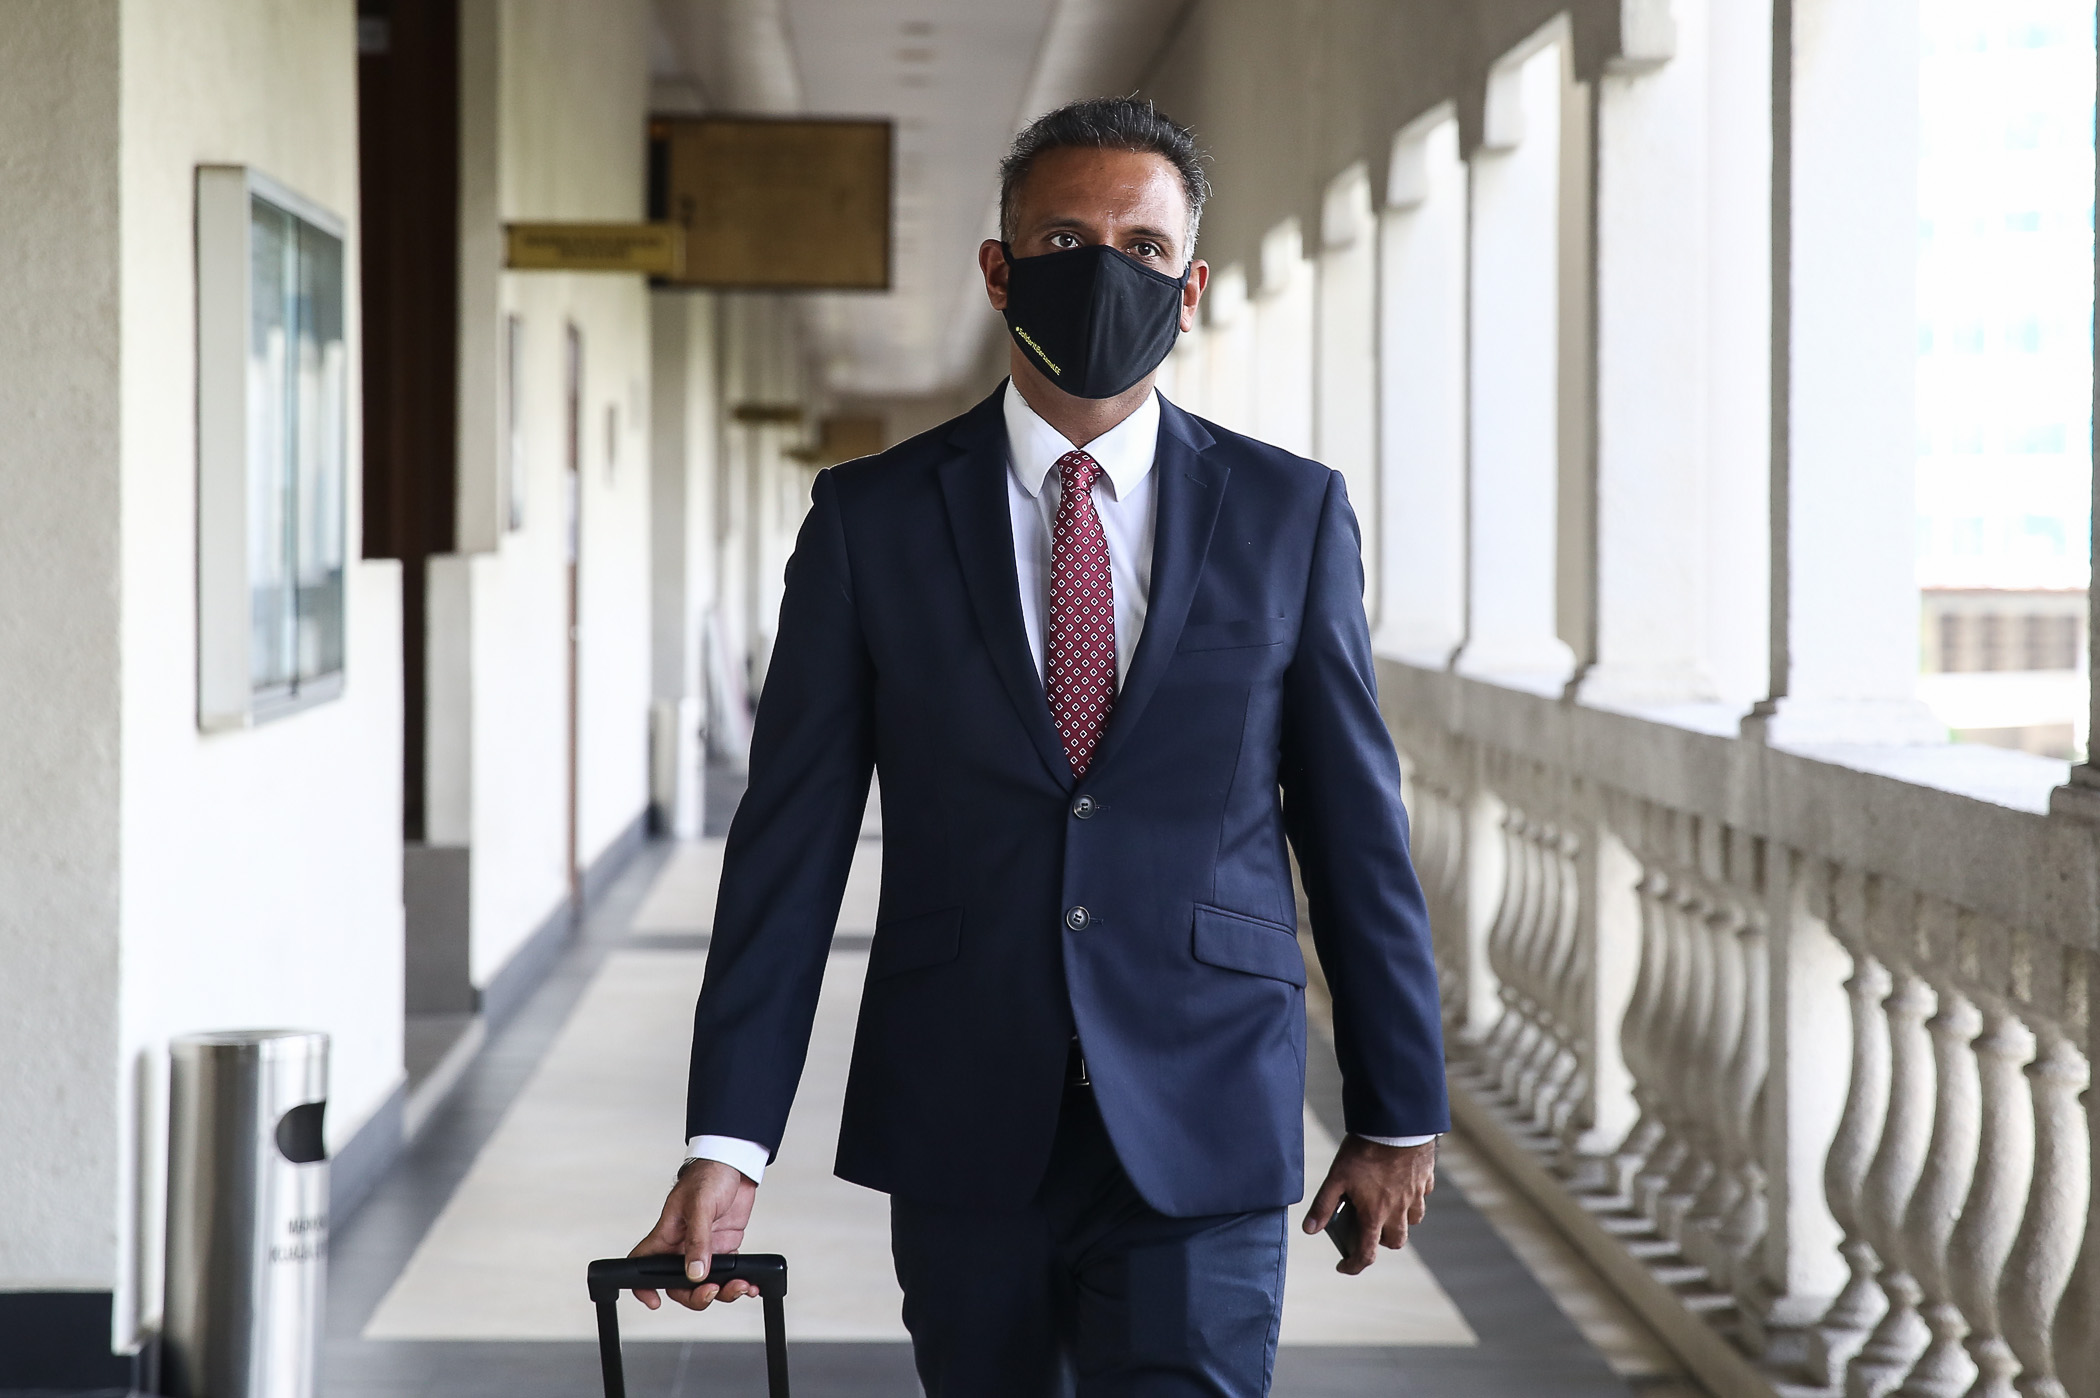 Lawyer Ramkarpal Singh is pictured at the Kuala Lumpur High Court September 9, 2020. — Picture by Yusof Mat Isa